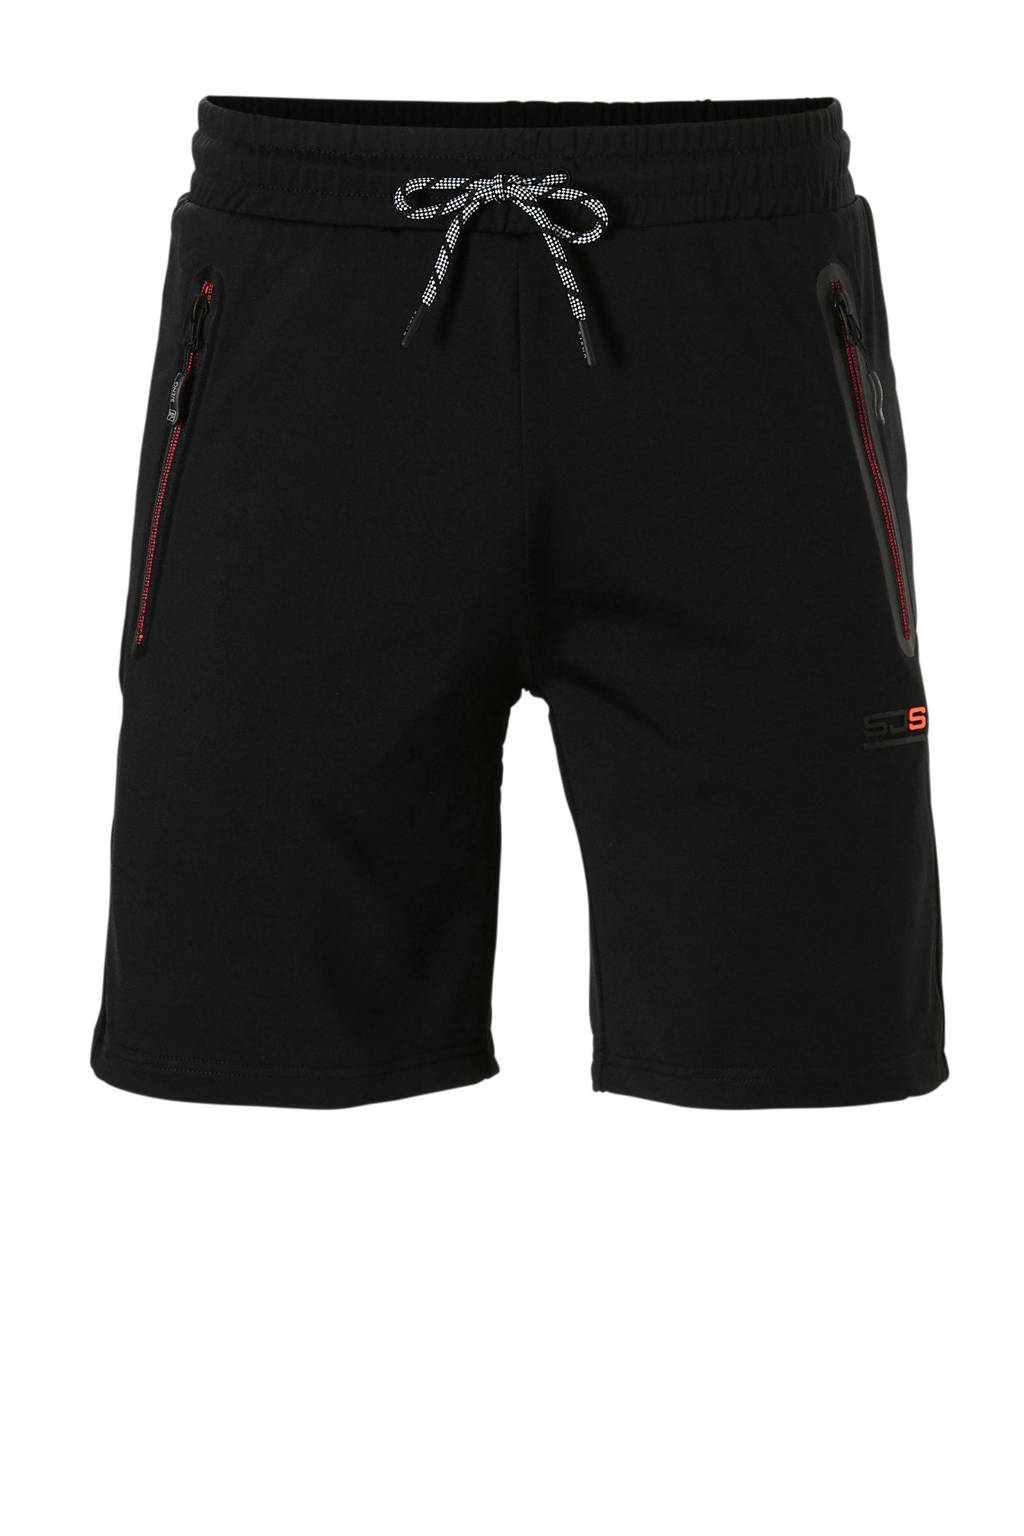 Sjeng Sports   short zwart, Zwart